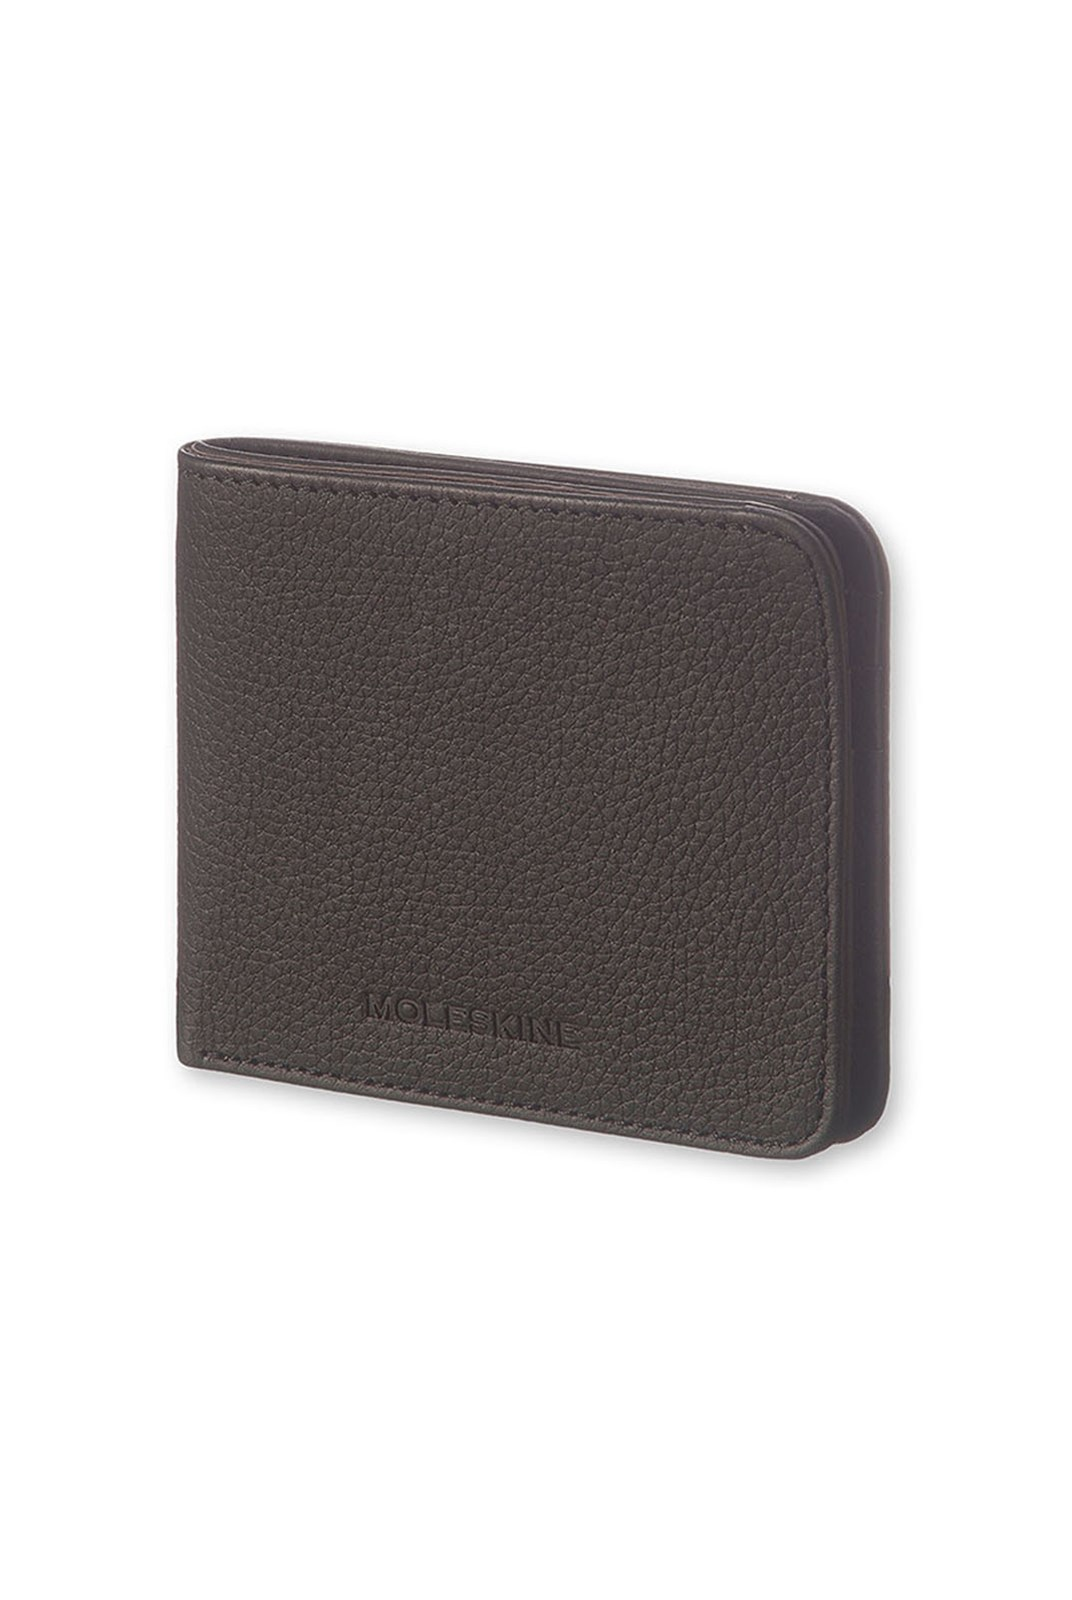 Moleskine - Lineage Leather Horizontal Wallet - Black